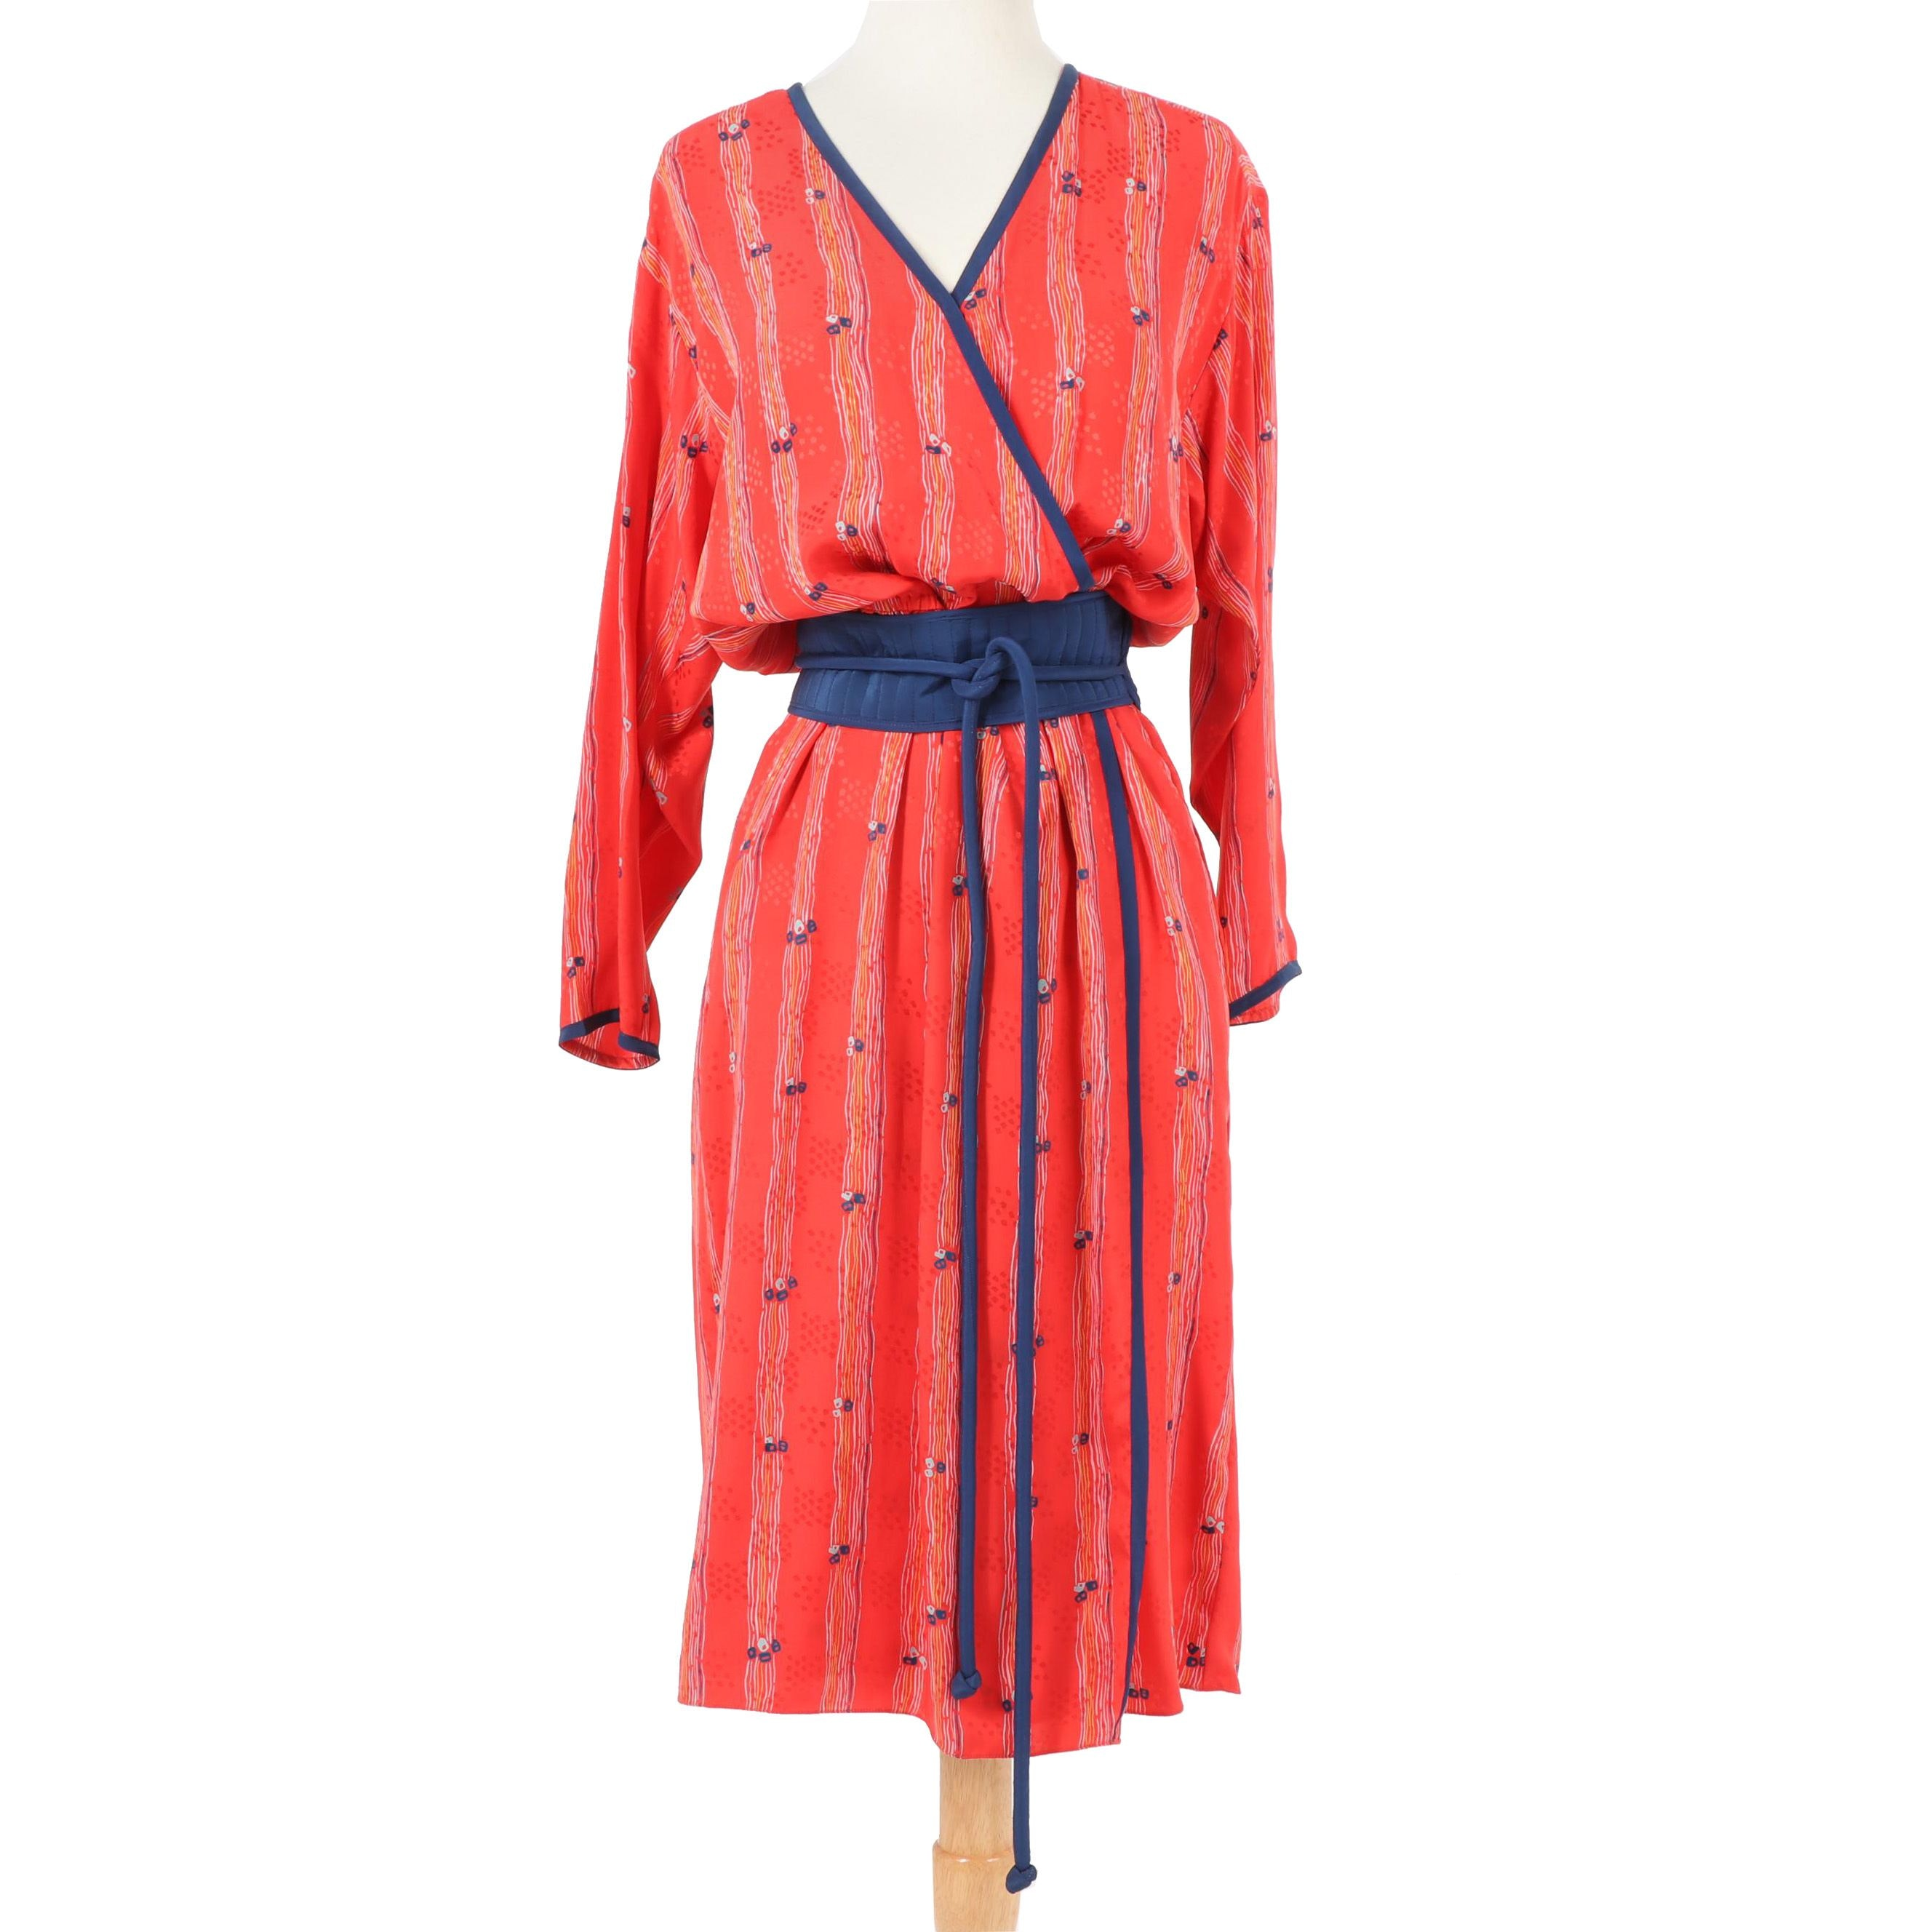 Mary McFadden for Jack Mulqueen Silk Wrap Dress with Belt, Vintage